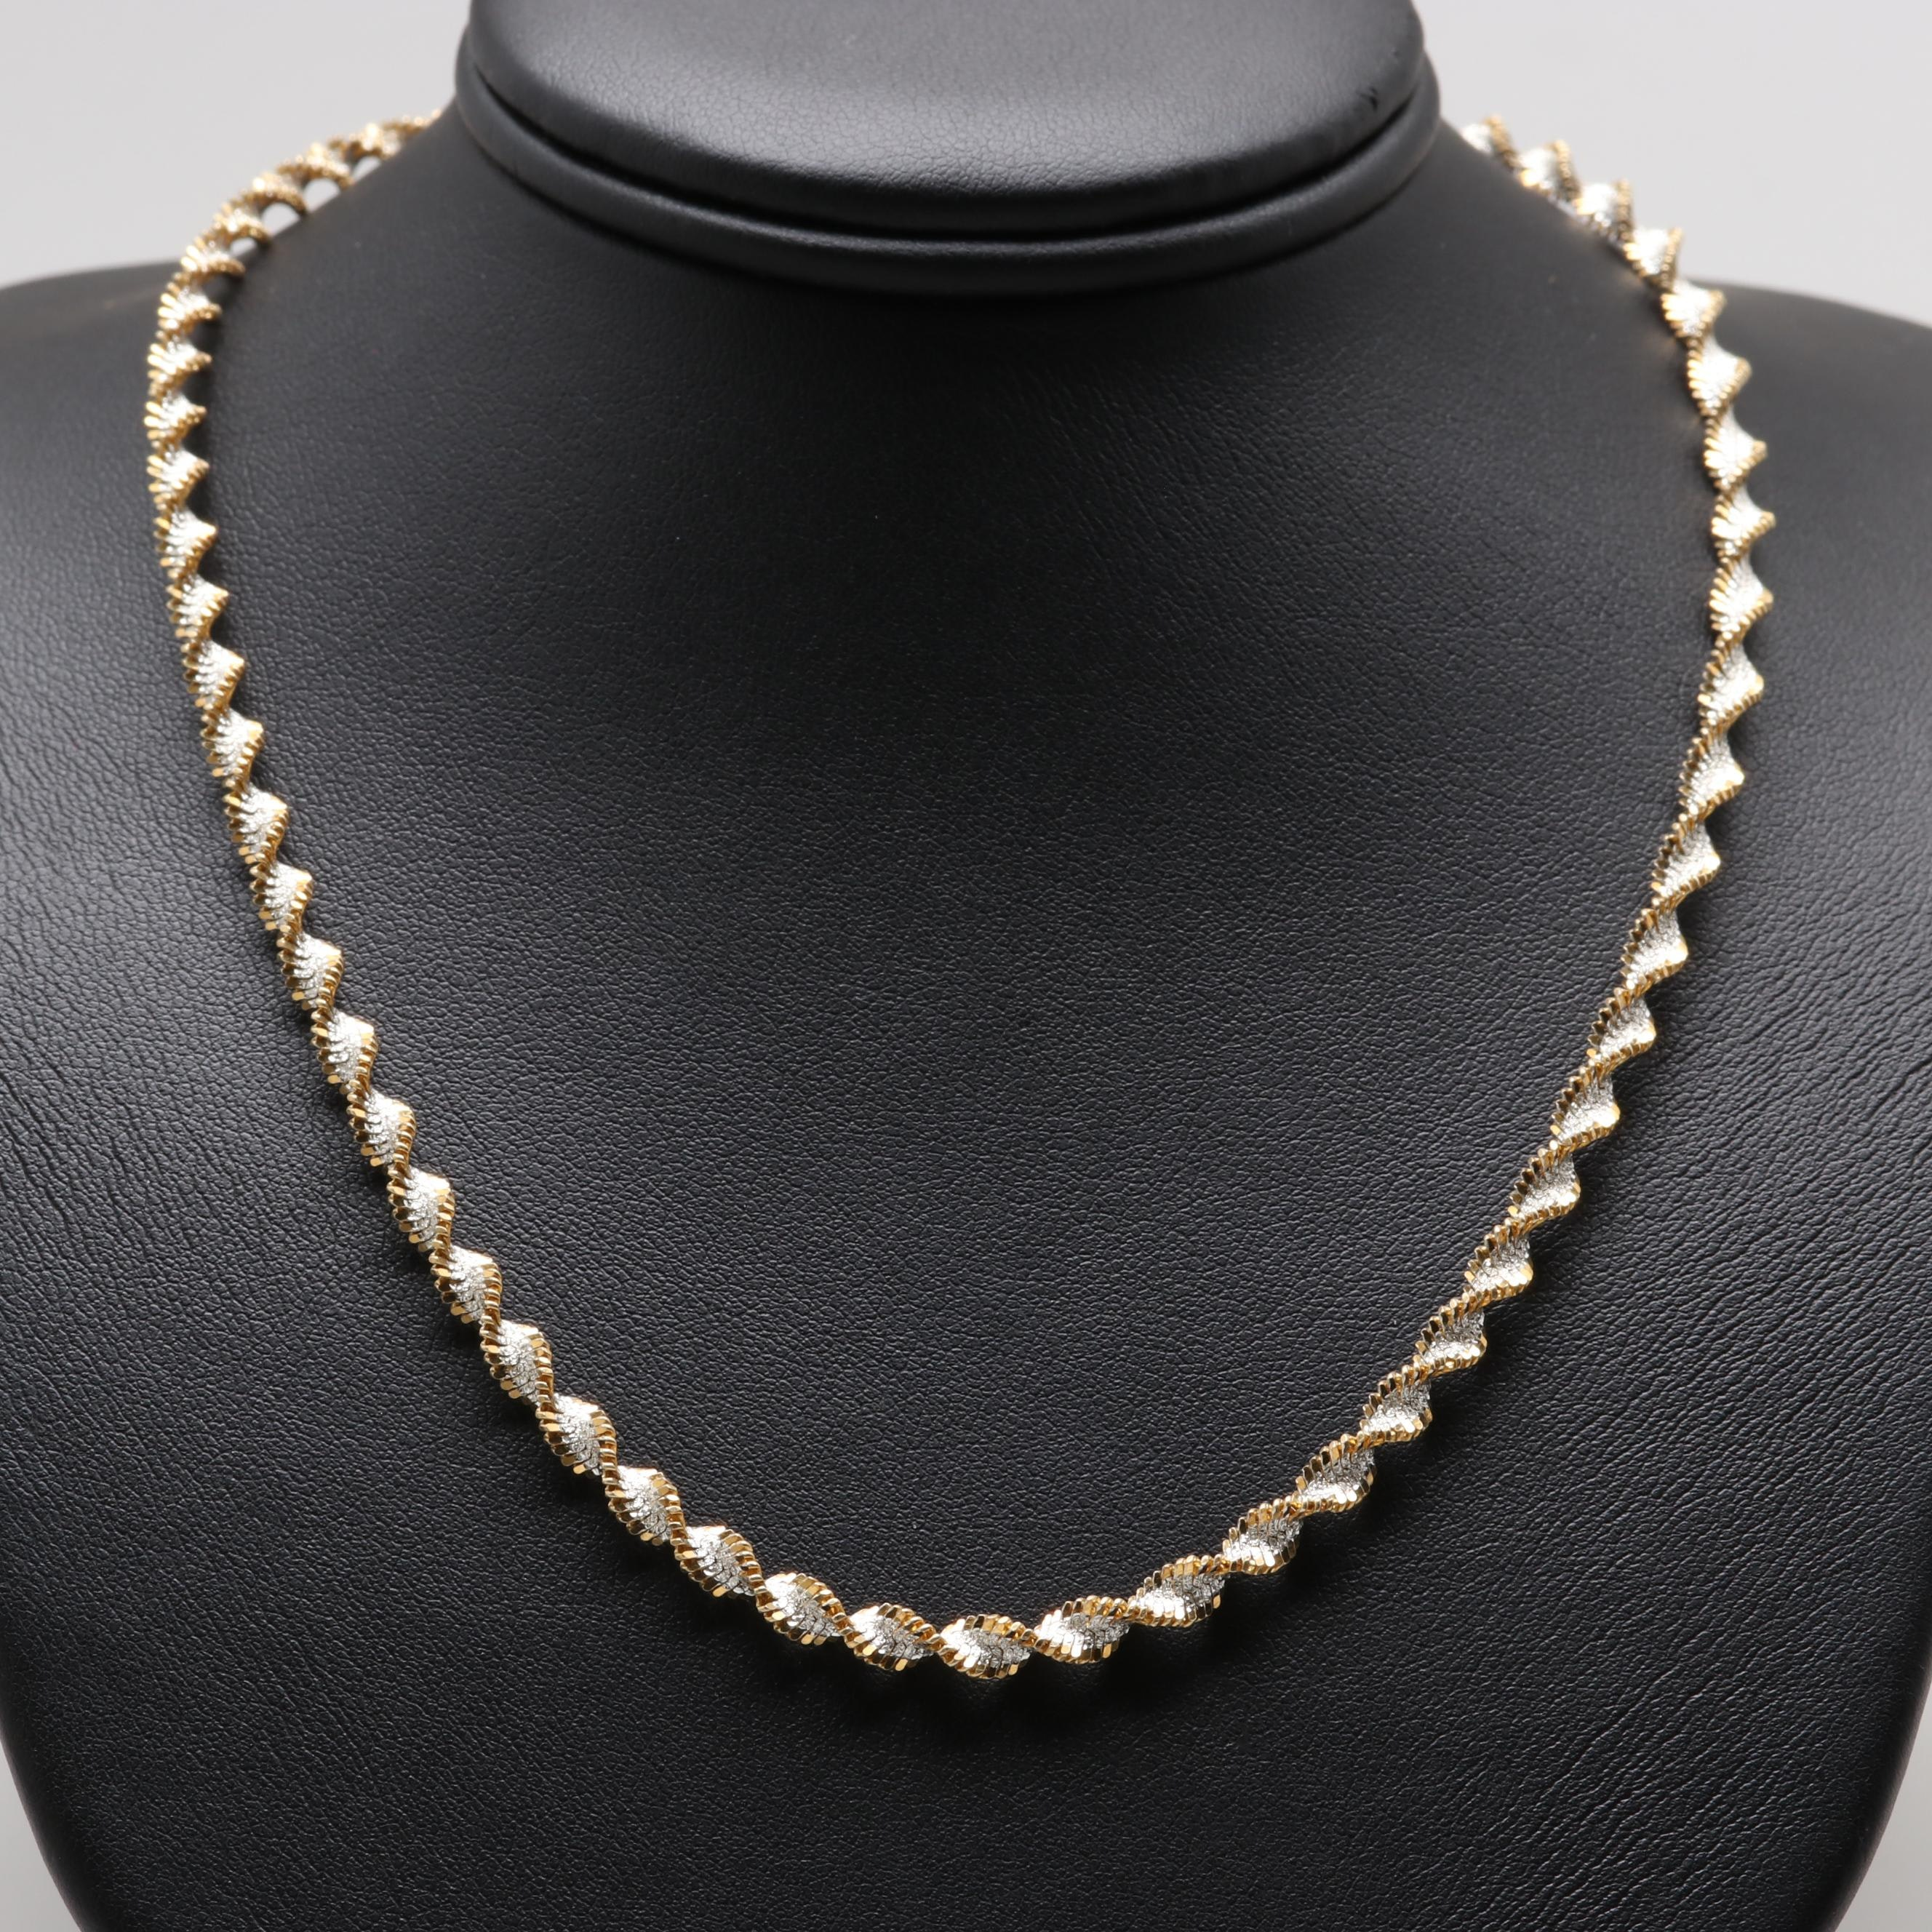 Sterling Silver Twisted Herringbone Chain Necklace with Gold Wash Accents